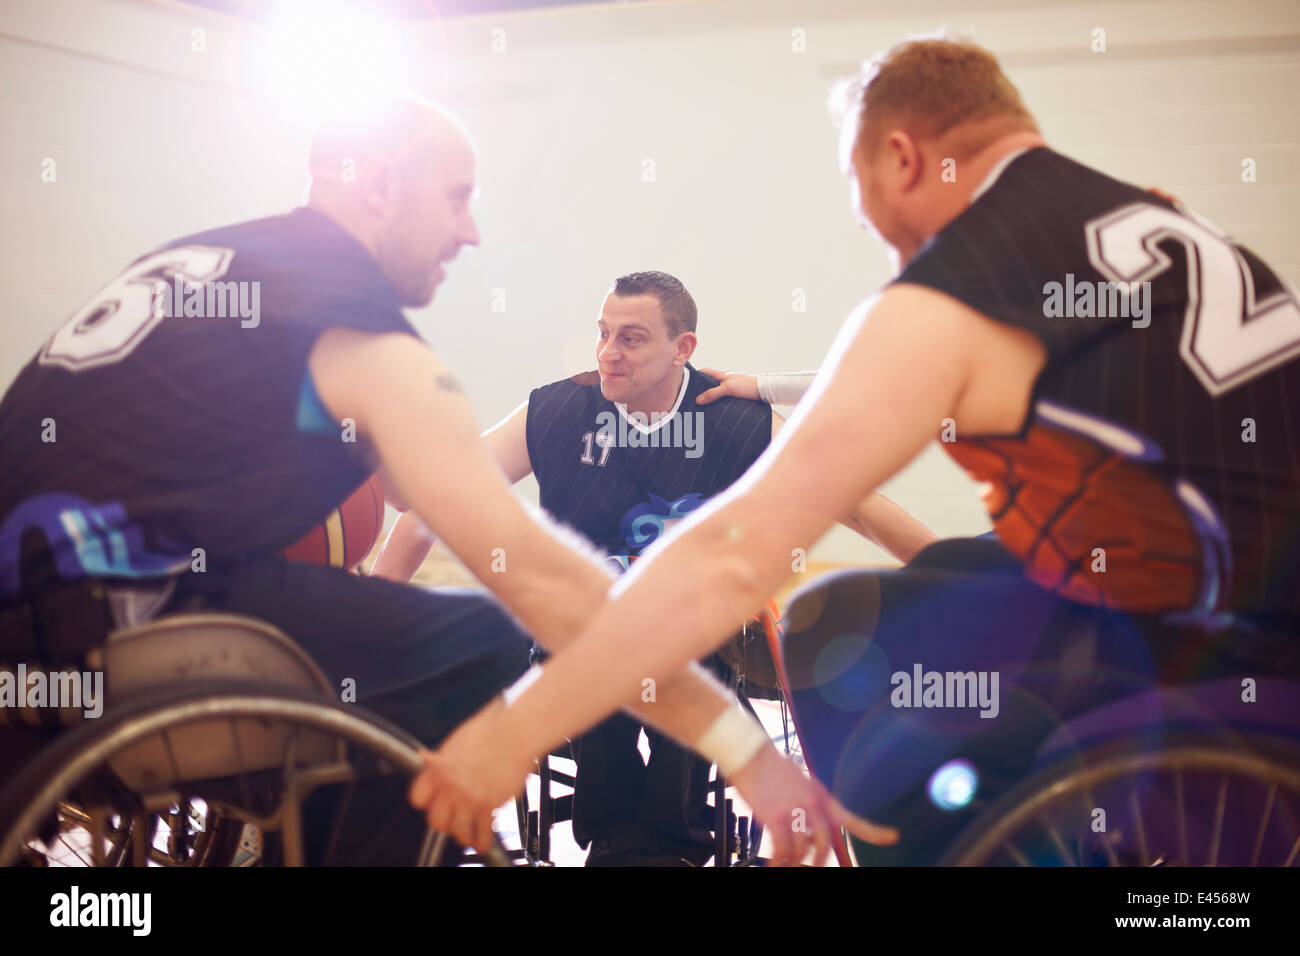 Wheelchair basketball players display team encouragement - Stock Image